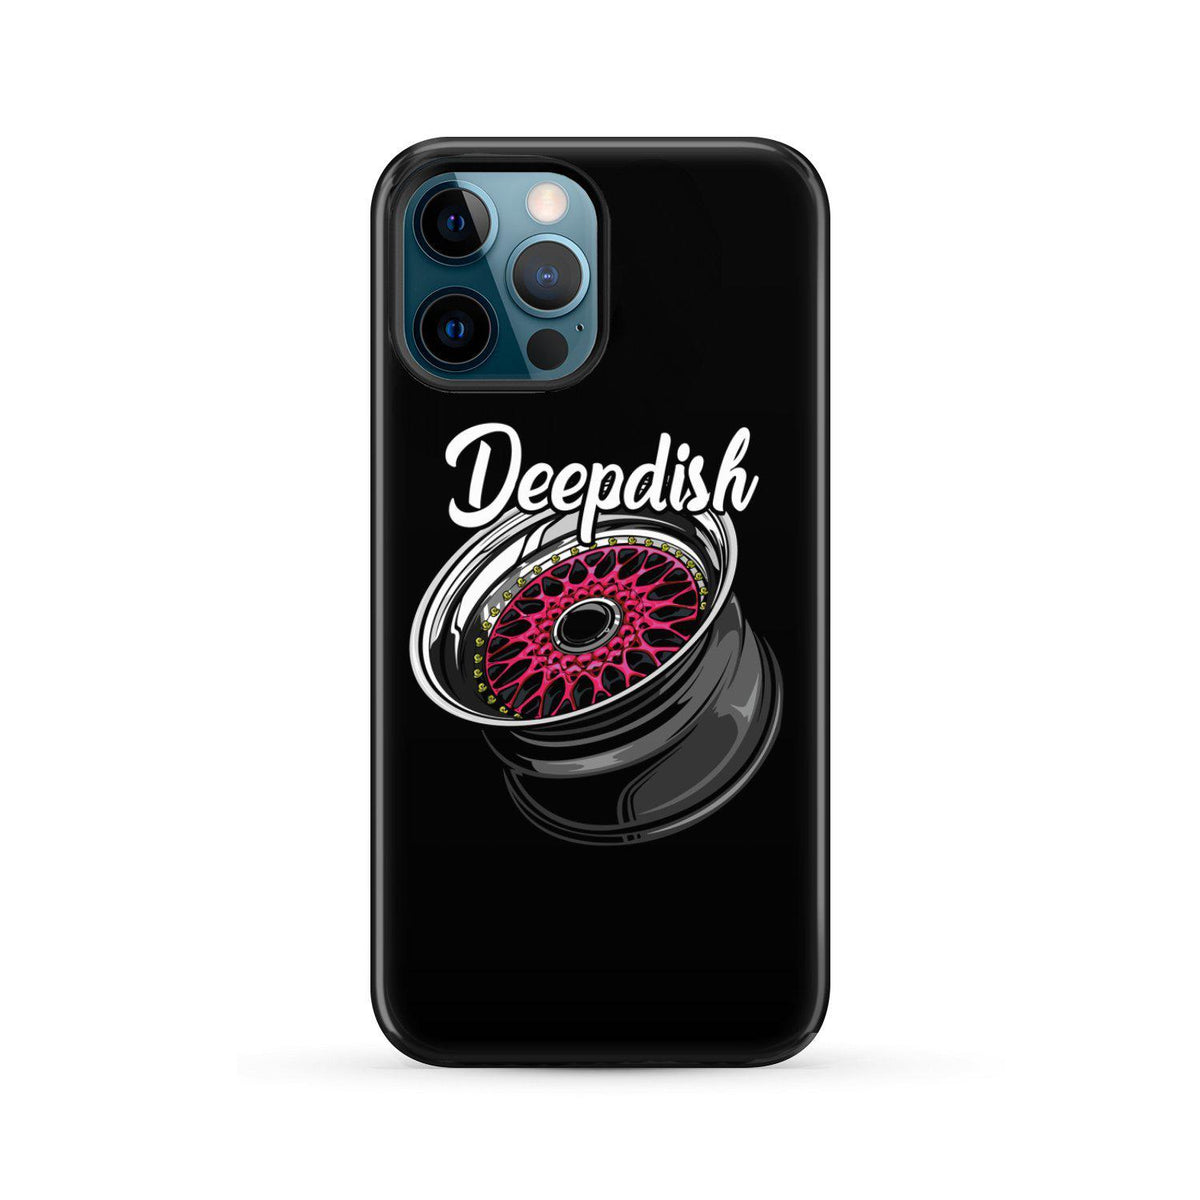 Deep Dish - Tough Case - for Apple iPhone Models - TunerLifestyle